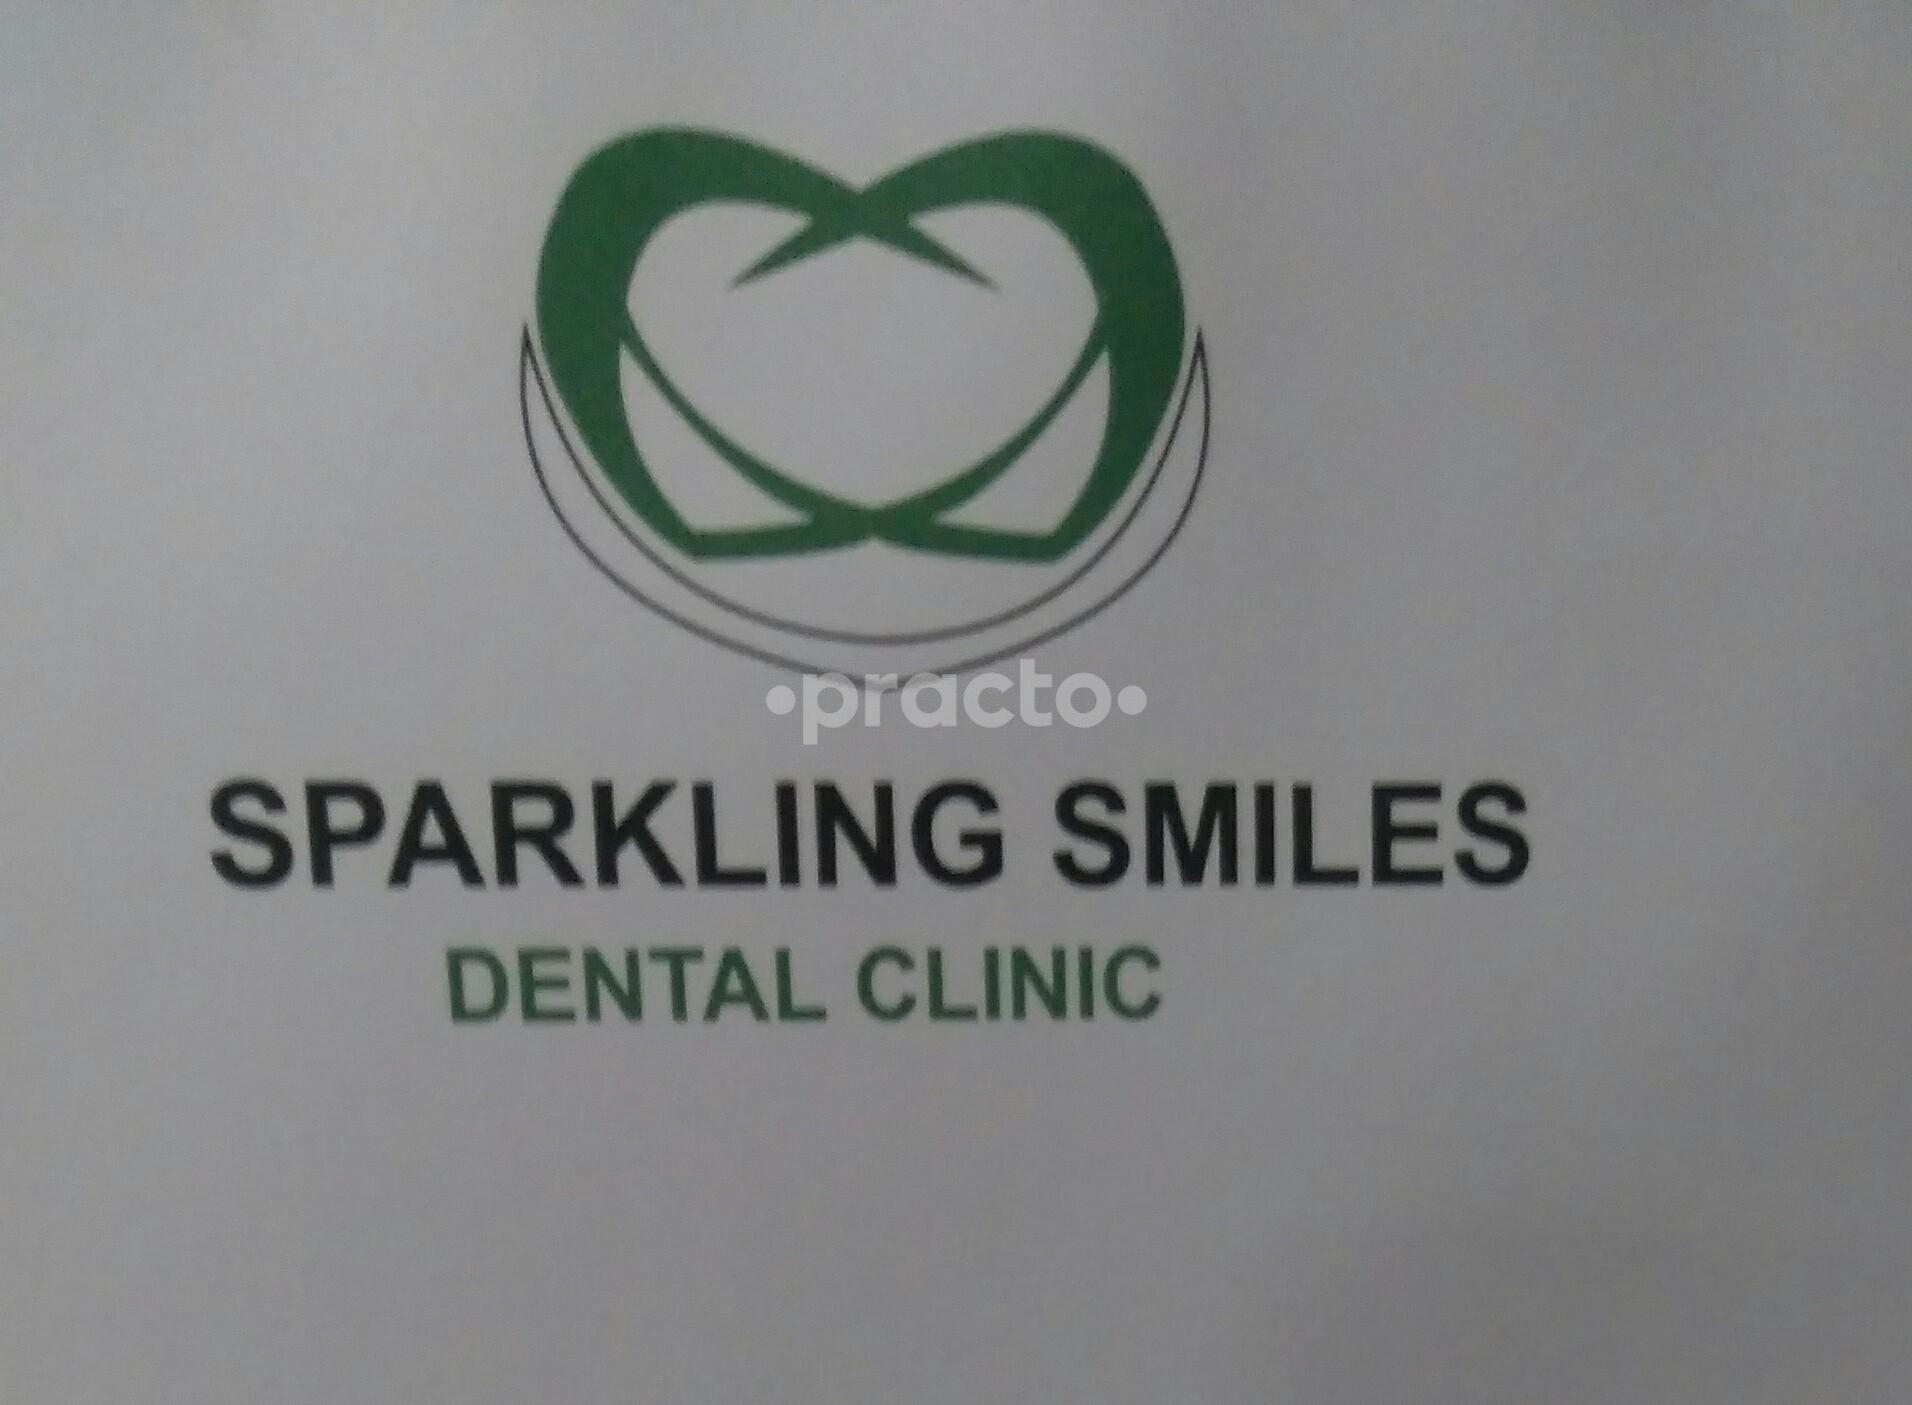 Sparkling Smiles Dental Clinic